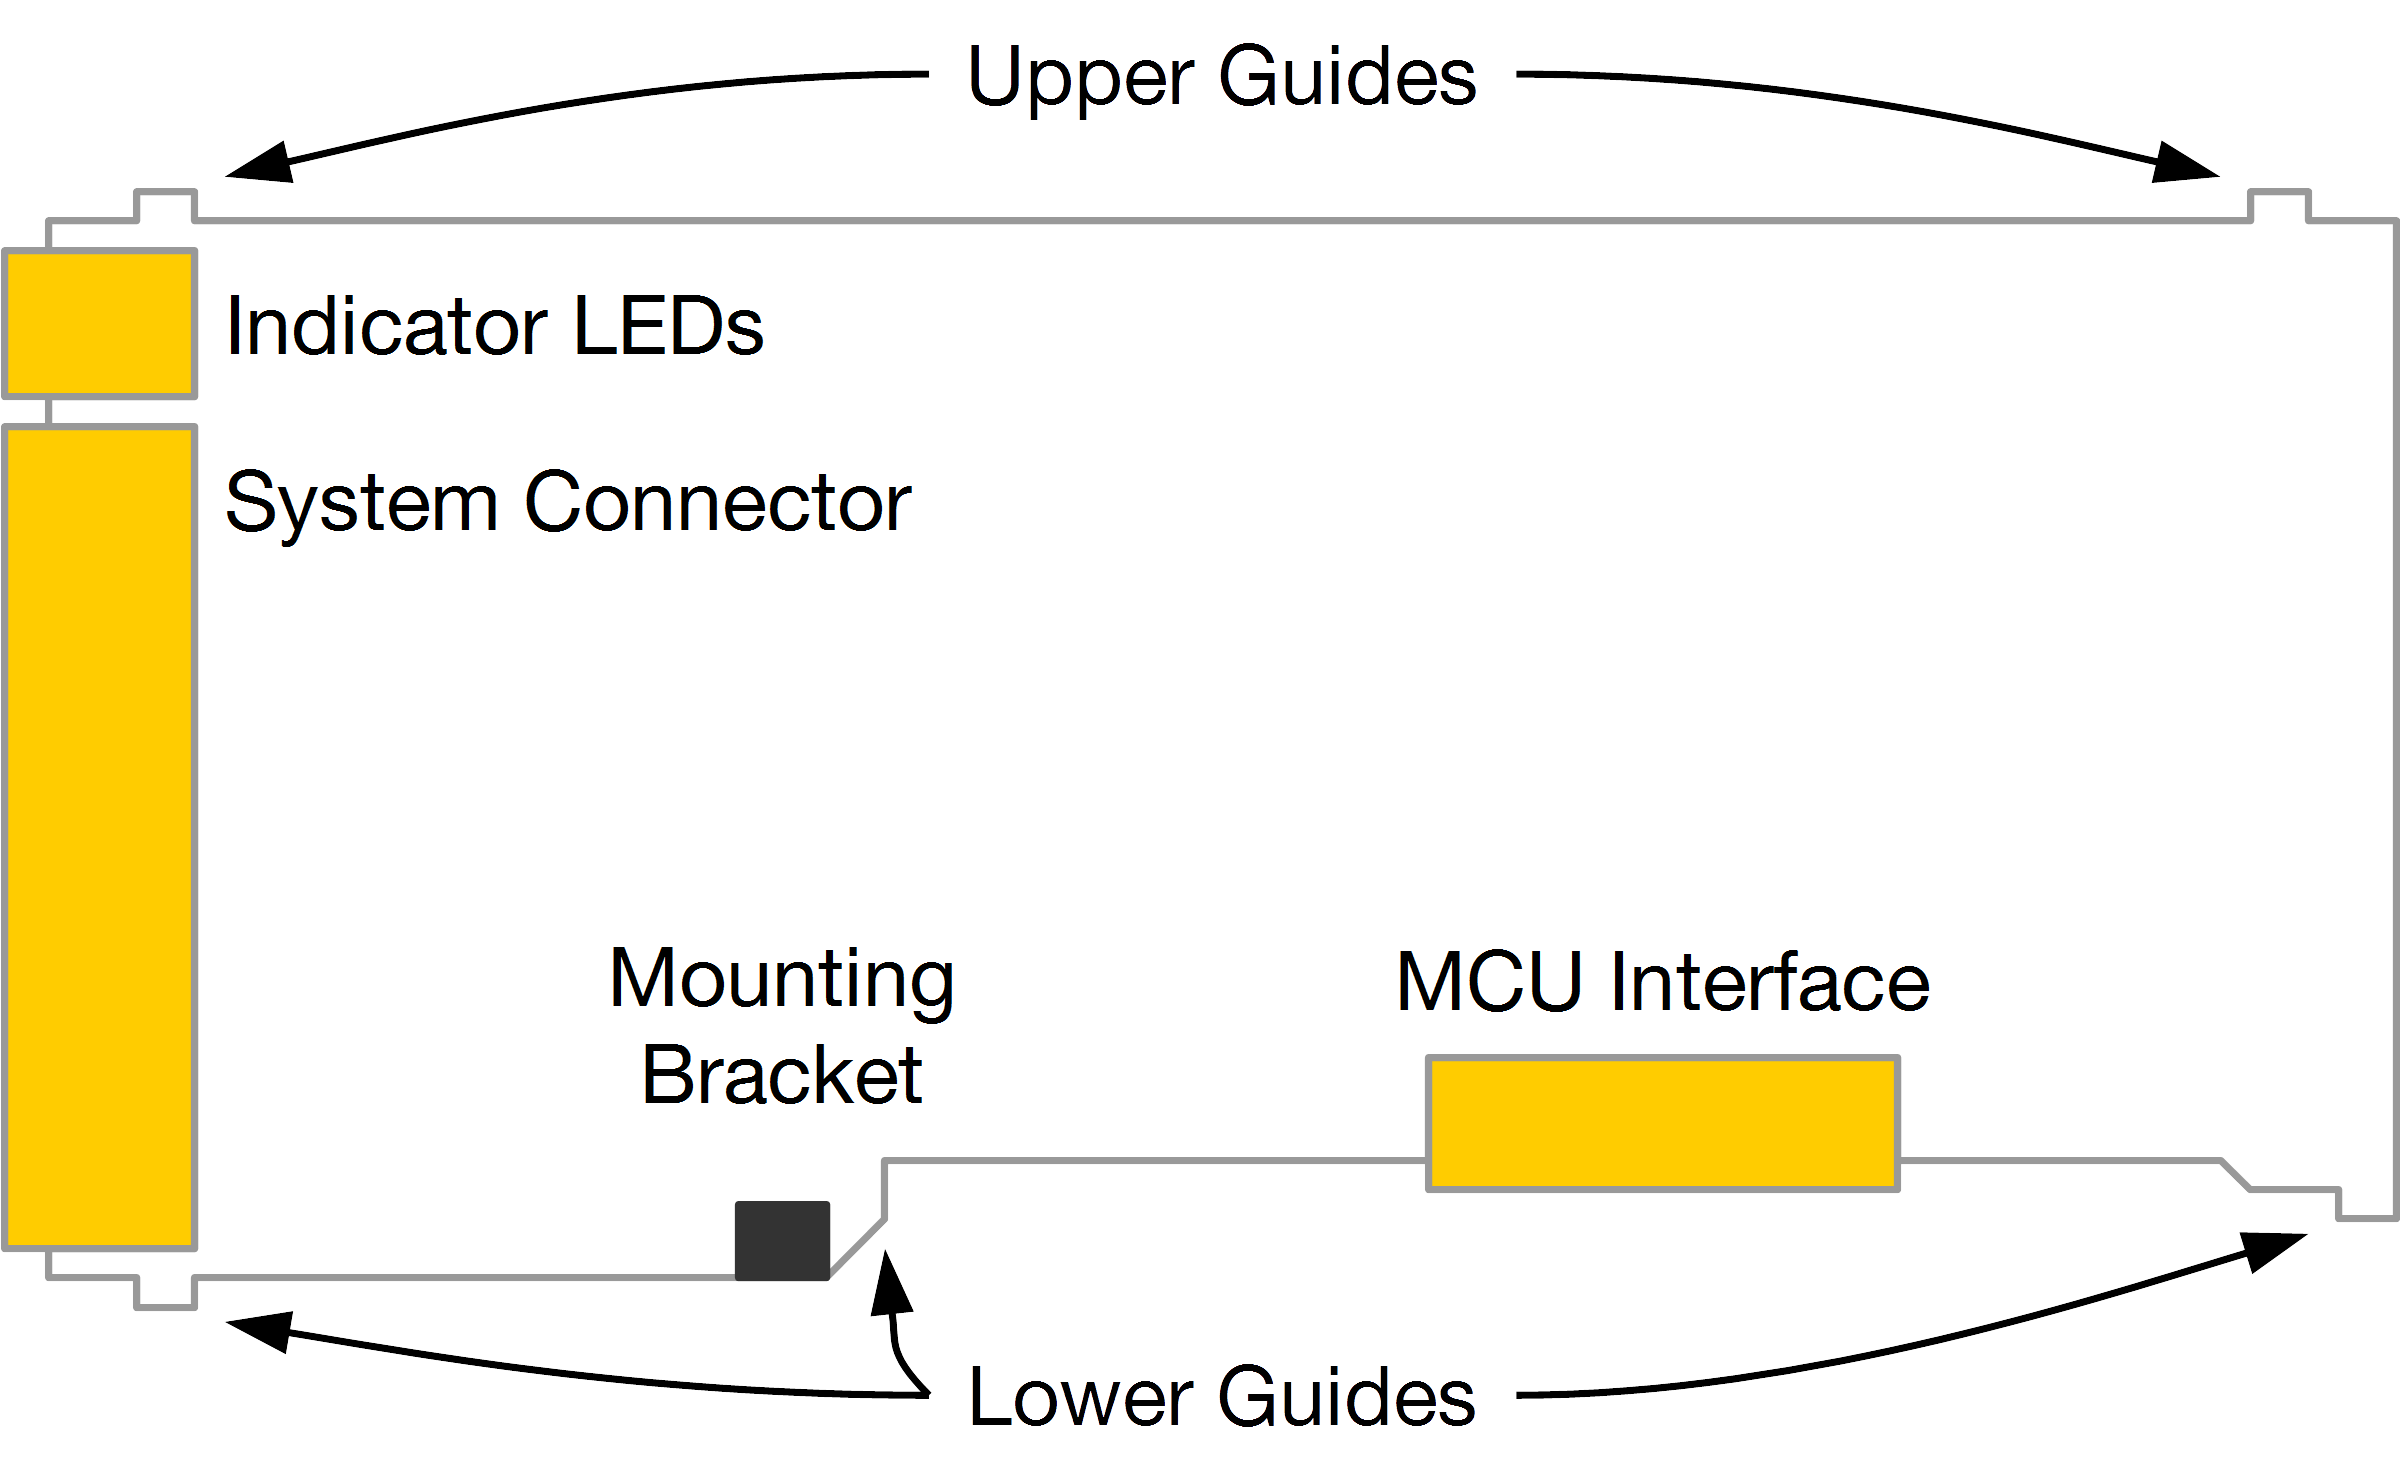 The anatomy of a SwitchGear Interface Module.